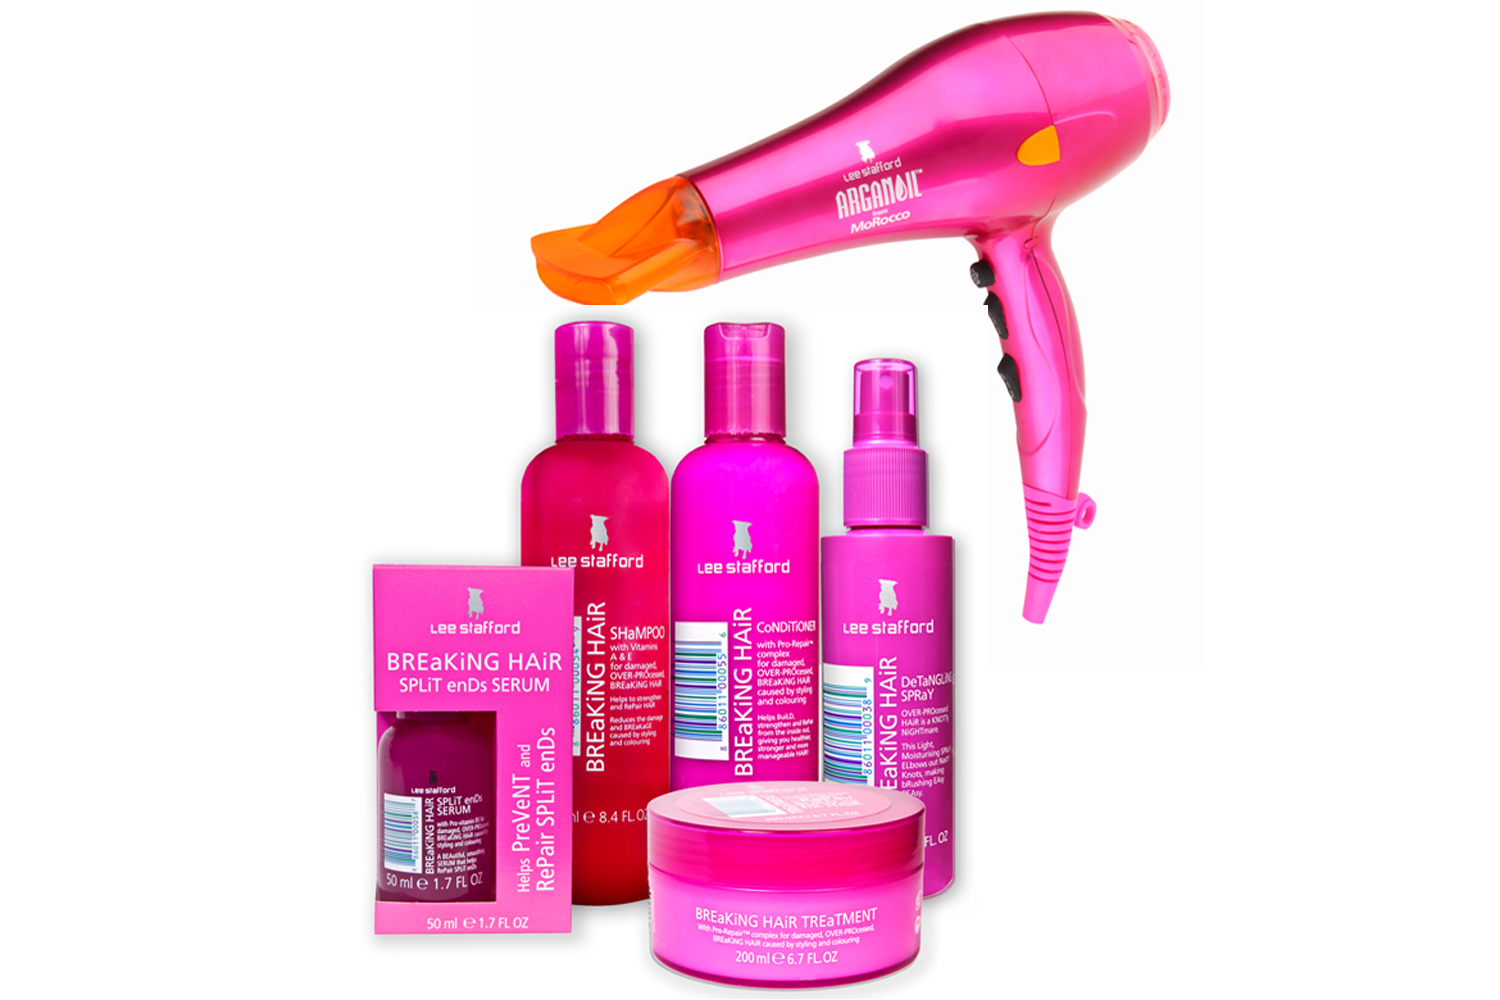 Friday Treat Competition Win A Lee Stafford Hairdryer And Breaking Hair Range